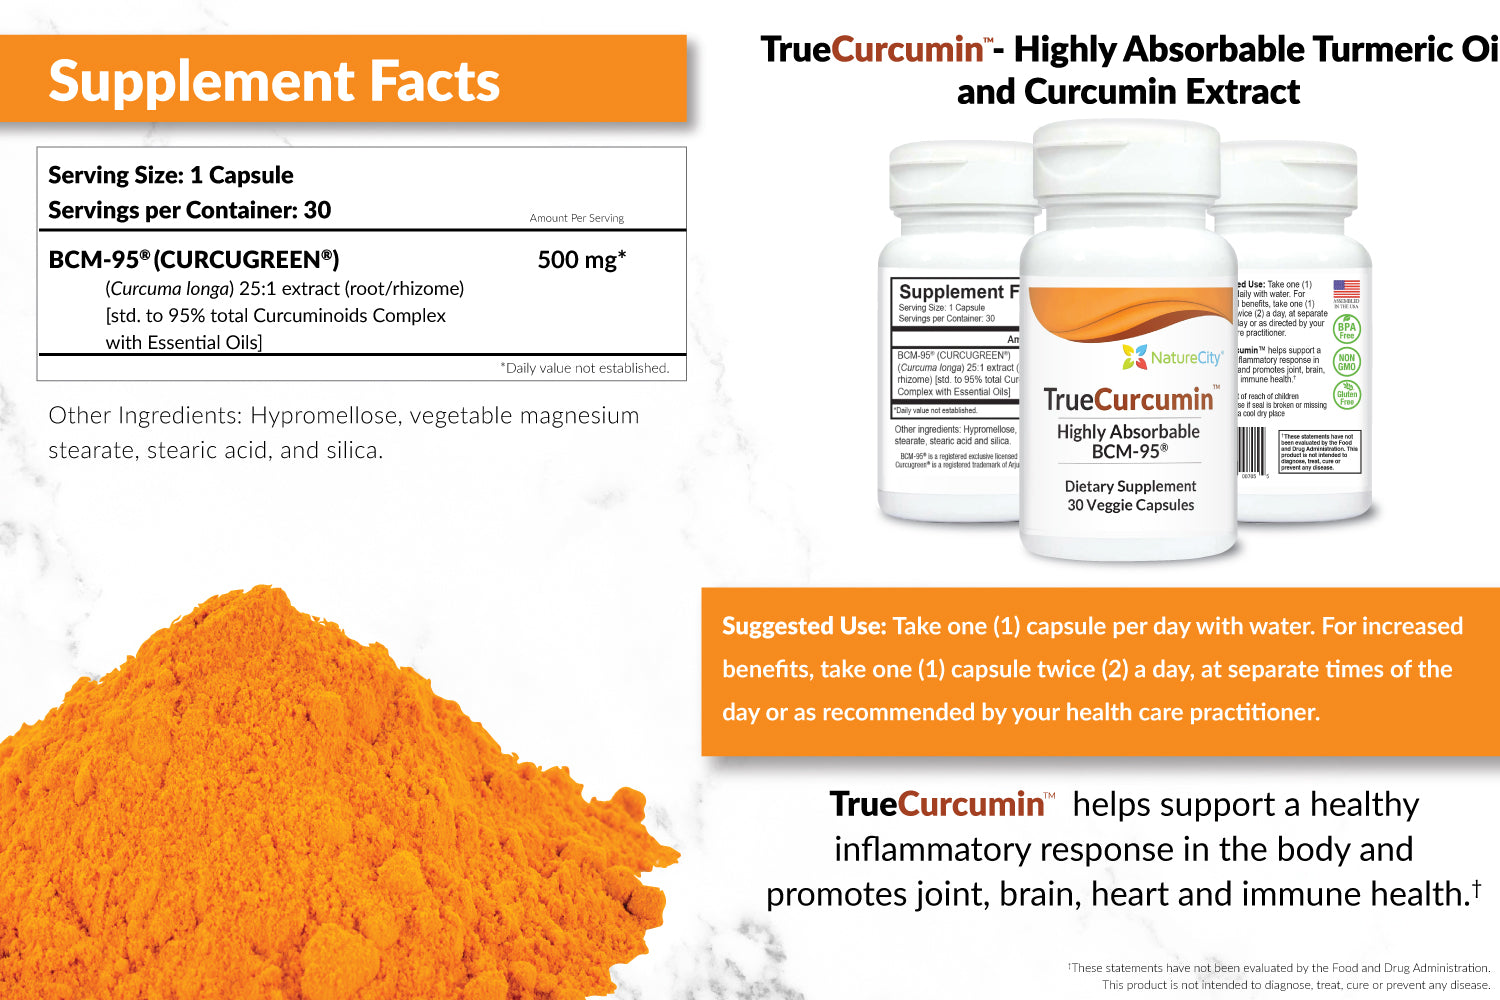 TrueCurcumin Turmeric Oil Extract Supplement Facts and Suggested Use